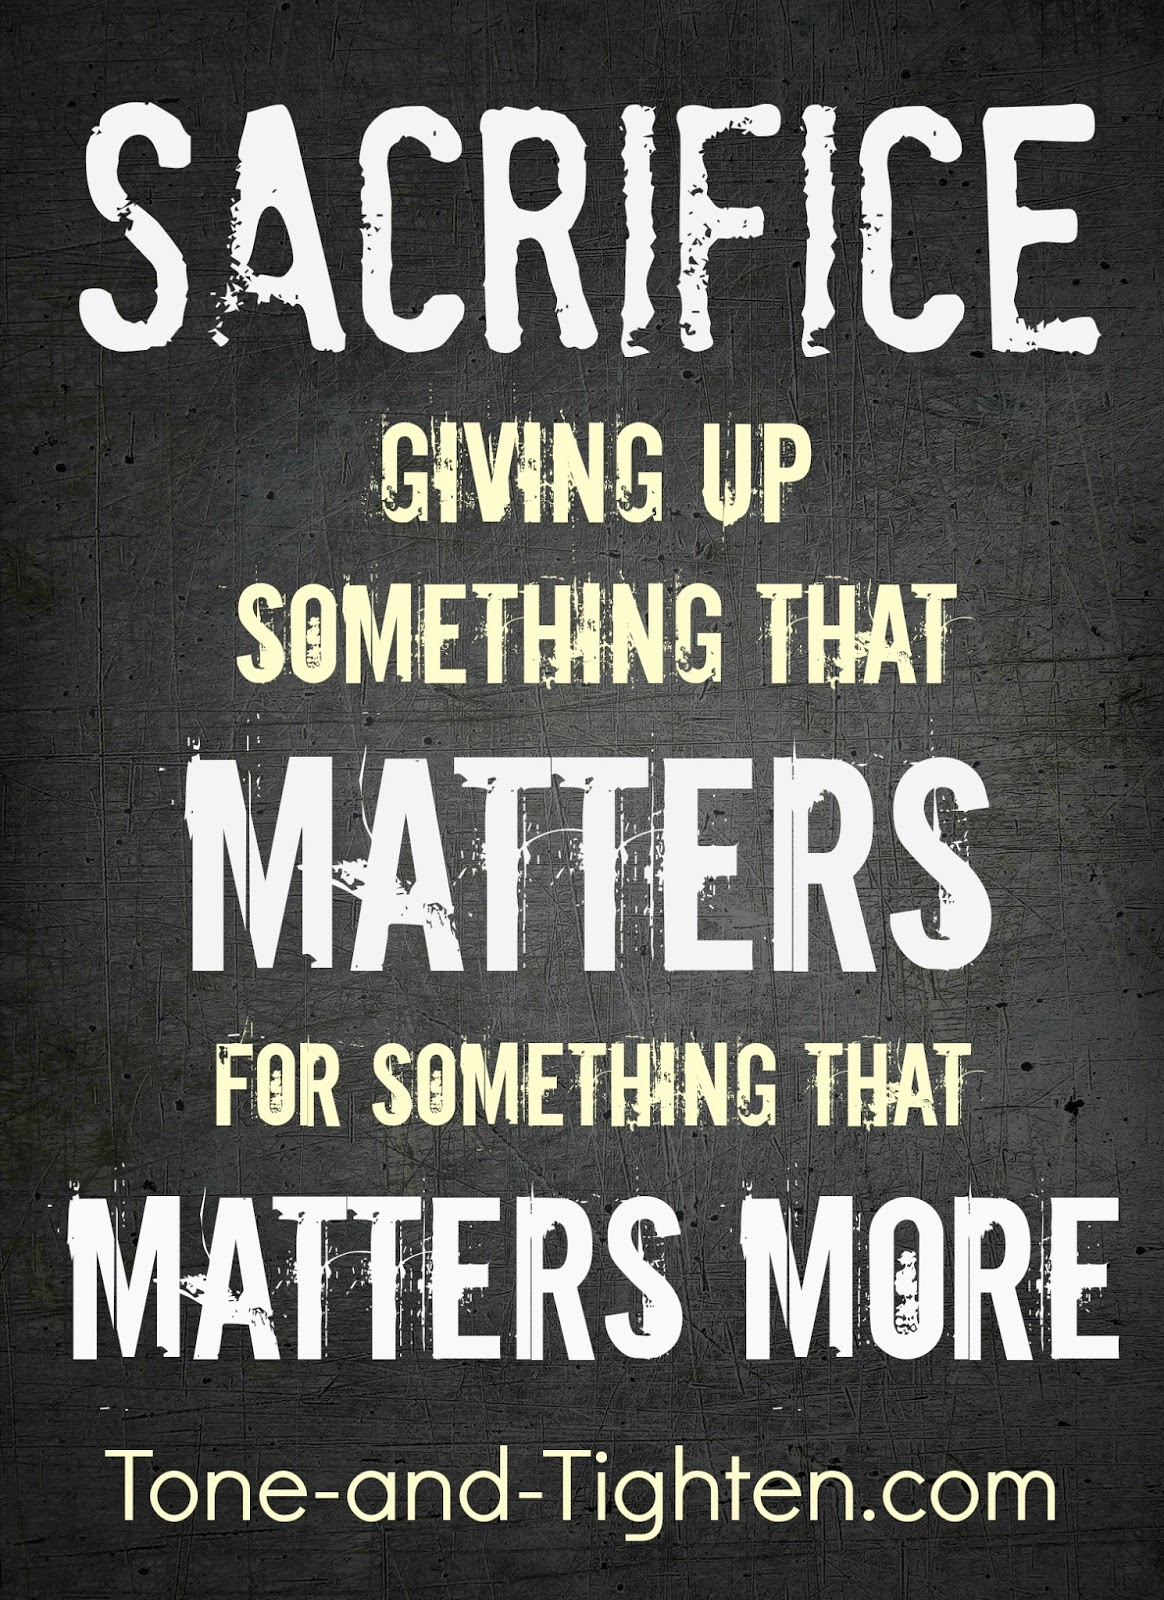 https://tone-and-tighten.com/2013/09/fitness-motivation-sacrifice.html